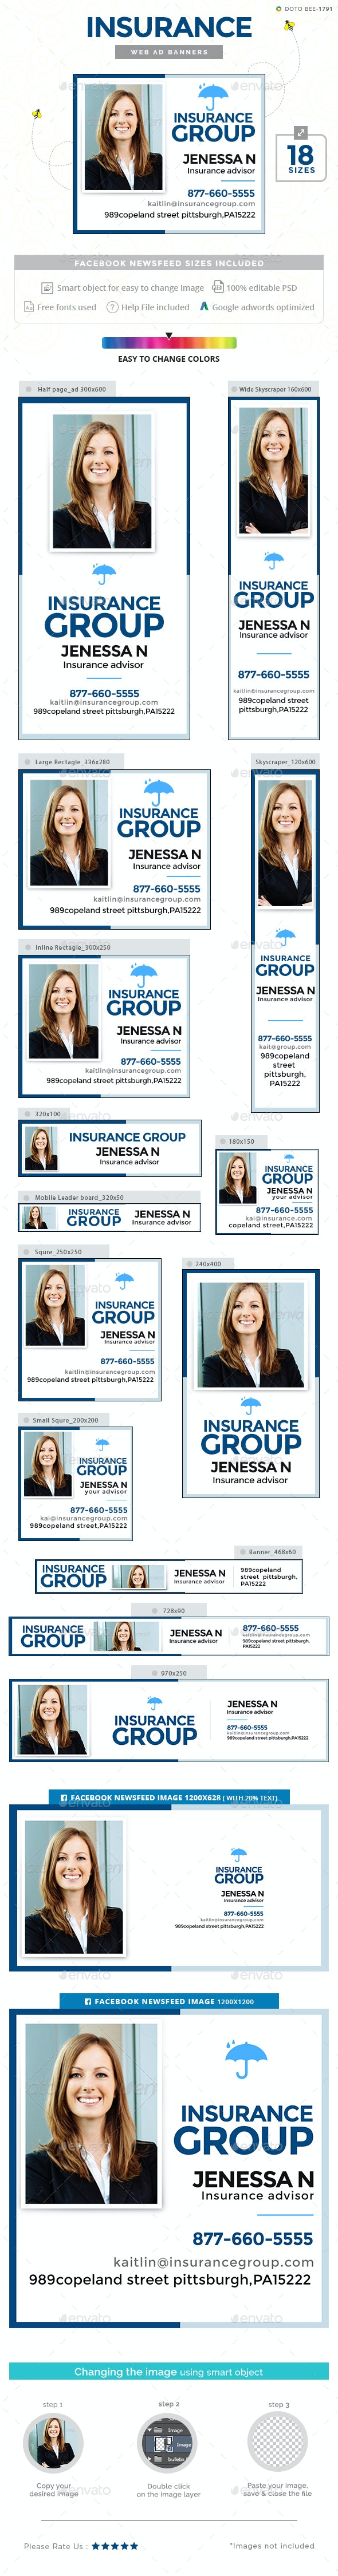 Insurance Ad Banners By Hyov Graphicriver